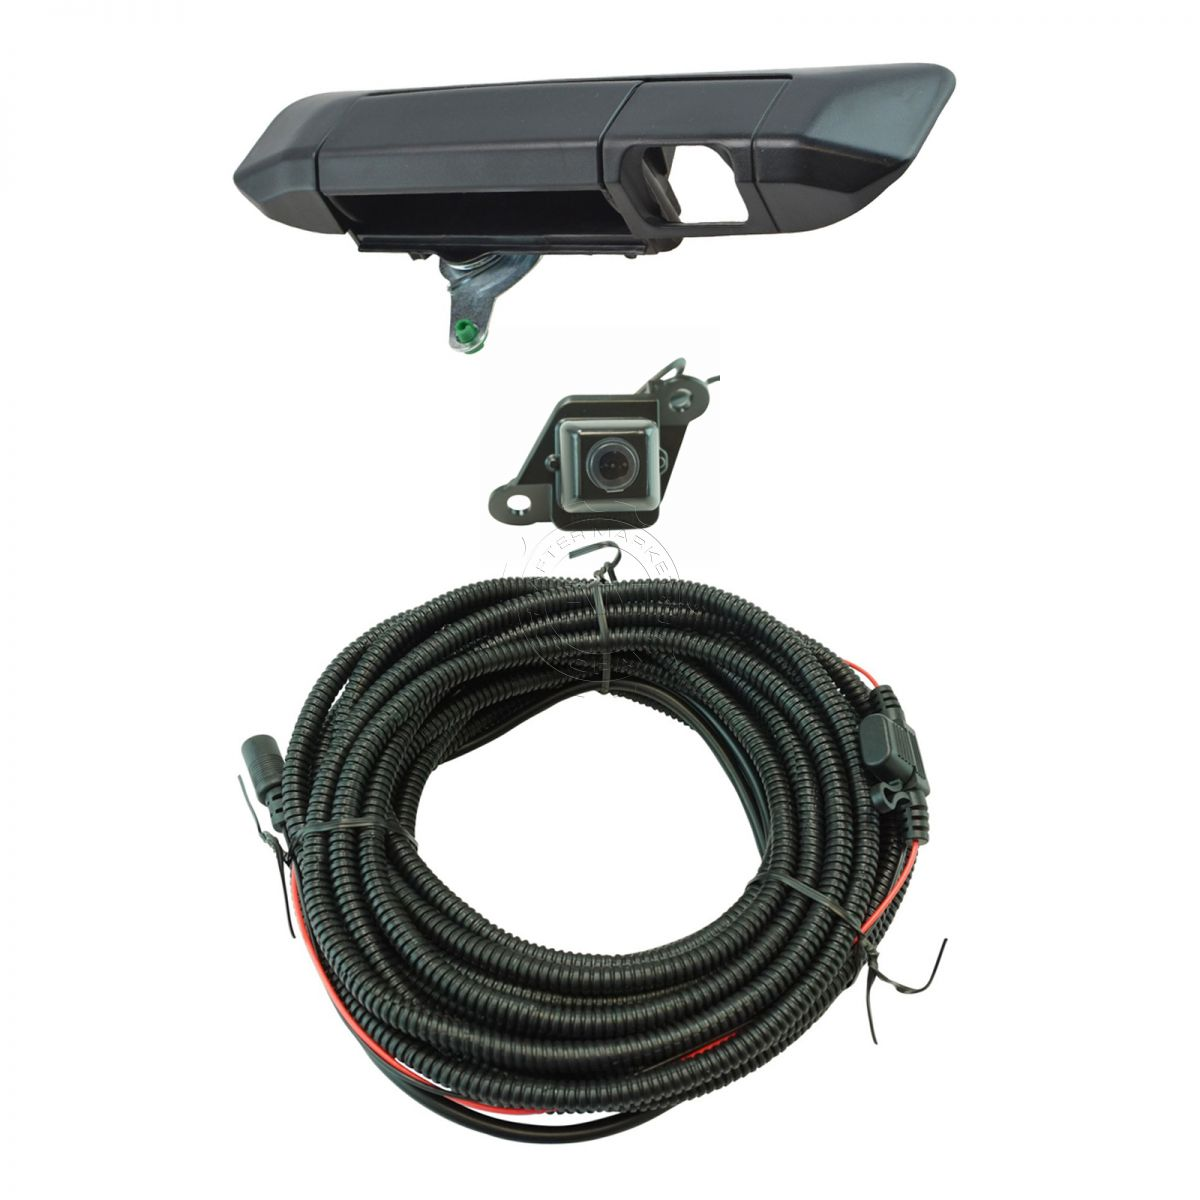 hight resolution of rear view camera add on kit w wiring harness tailgate handle for tacoma new